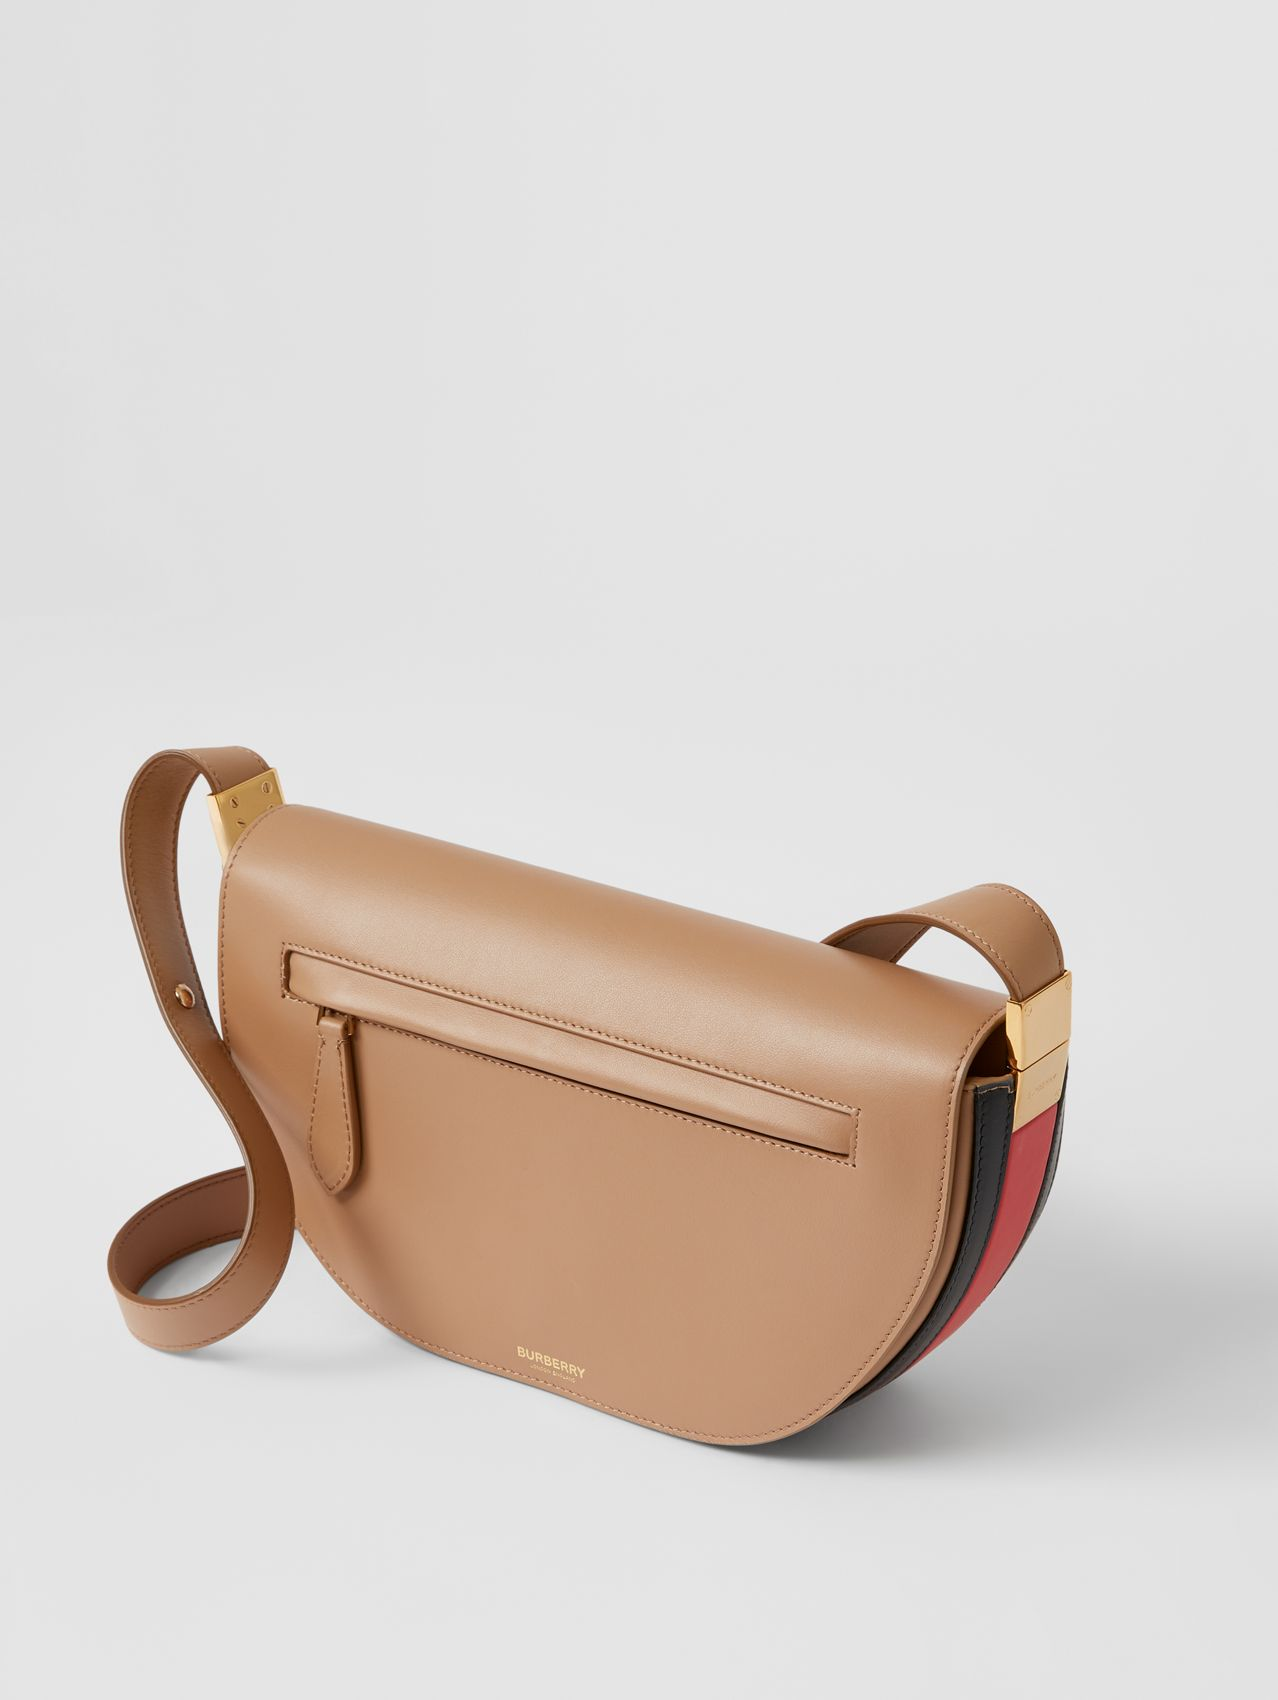 Small Leather Olympia Bag in Camel